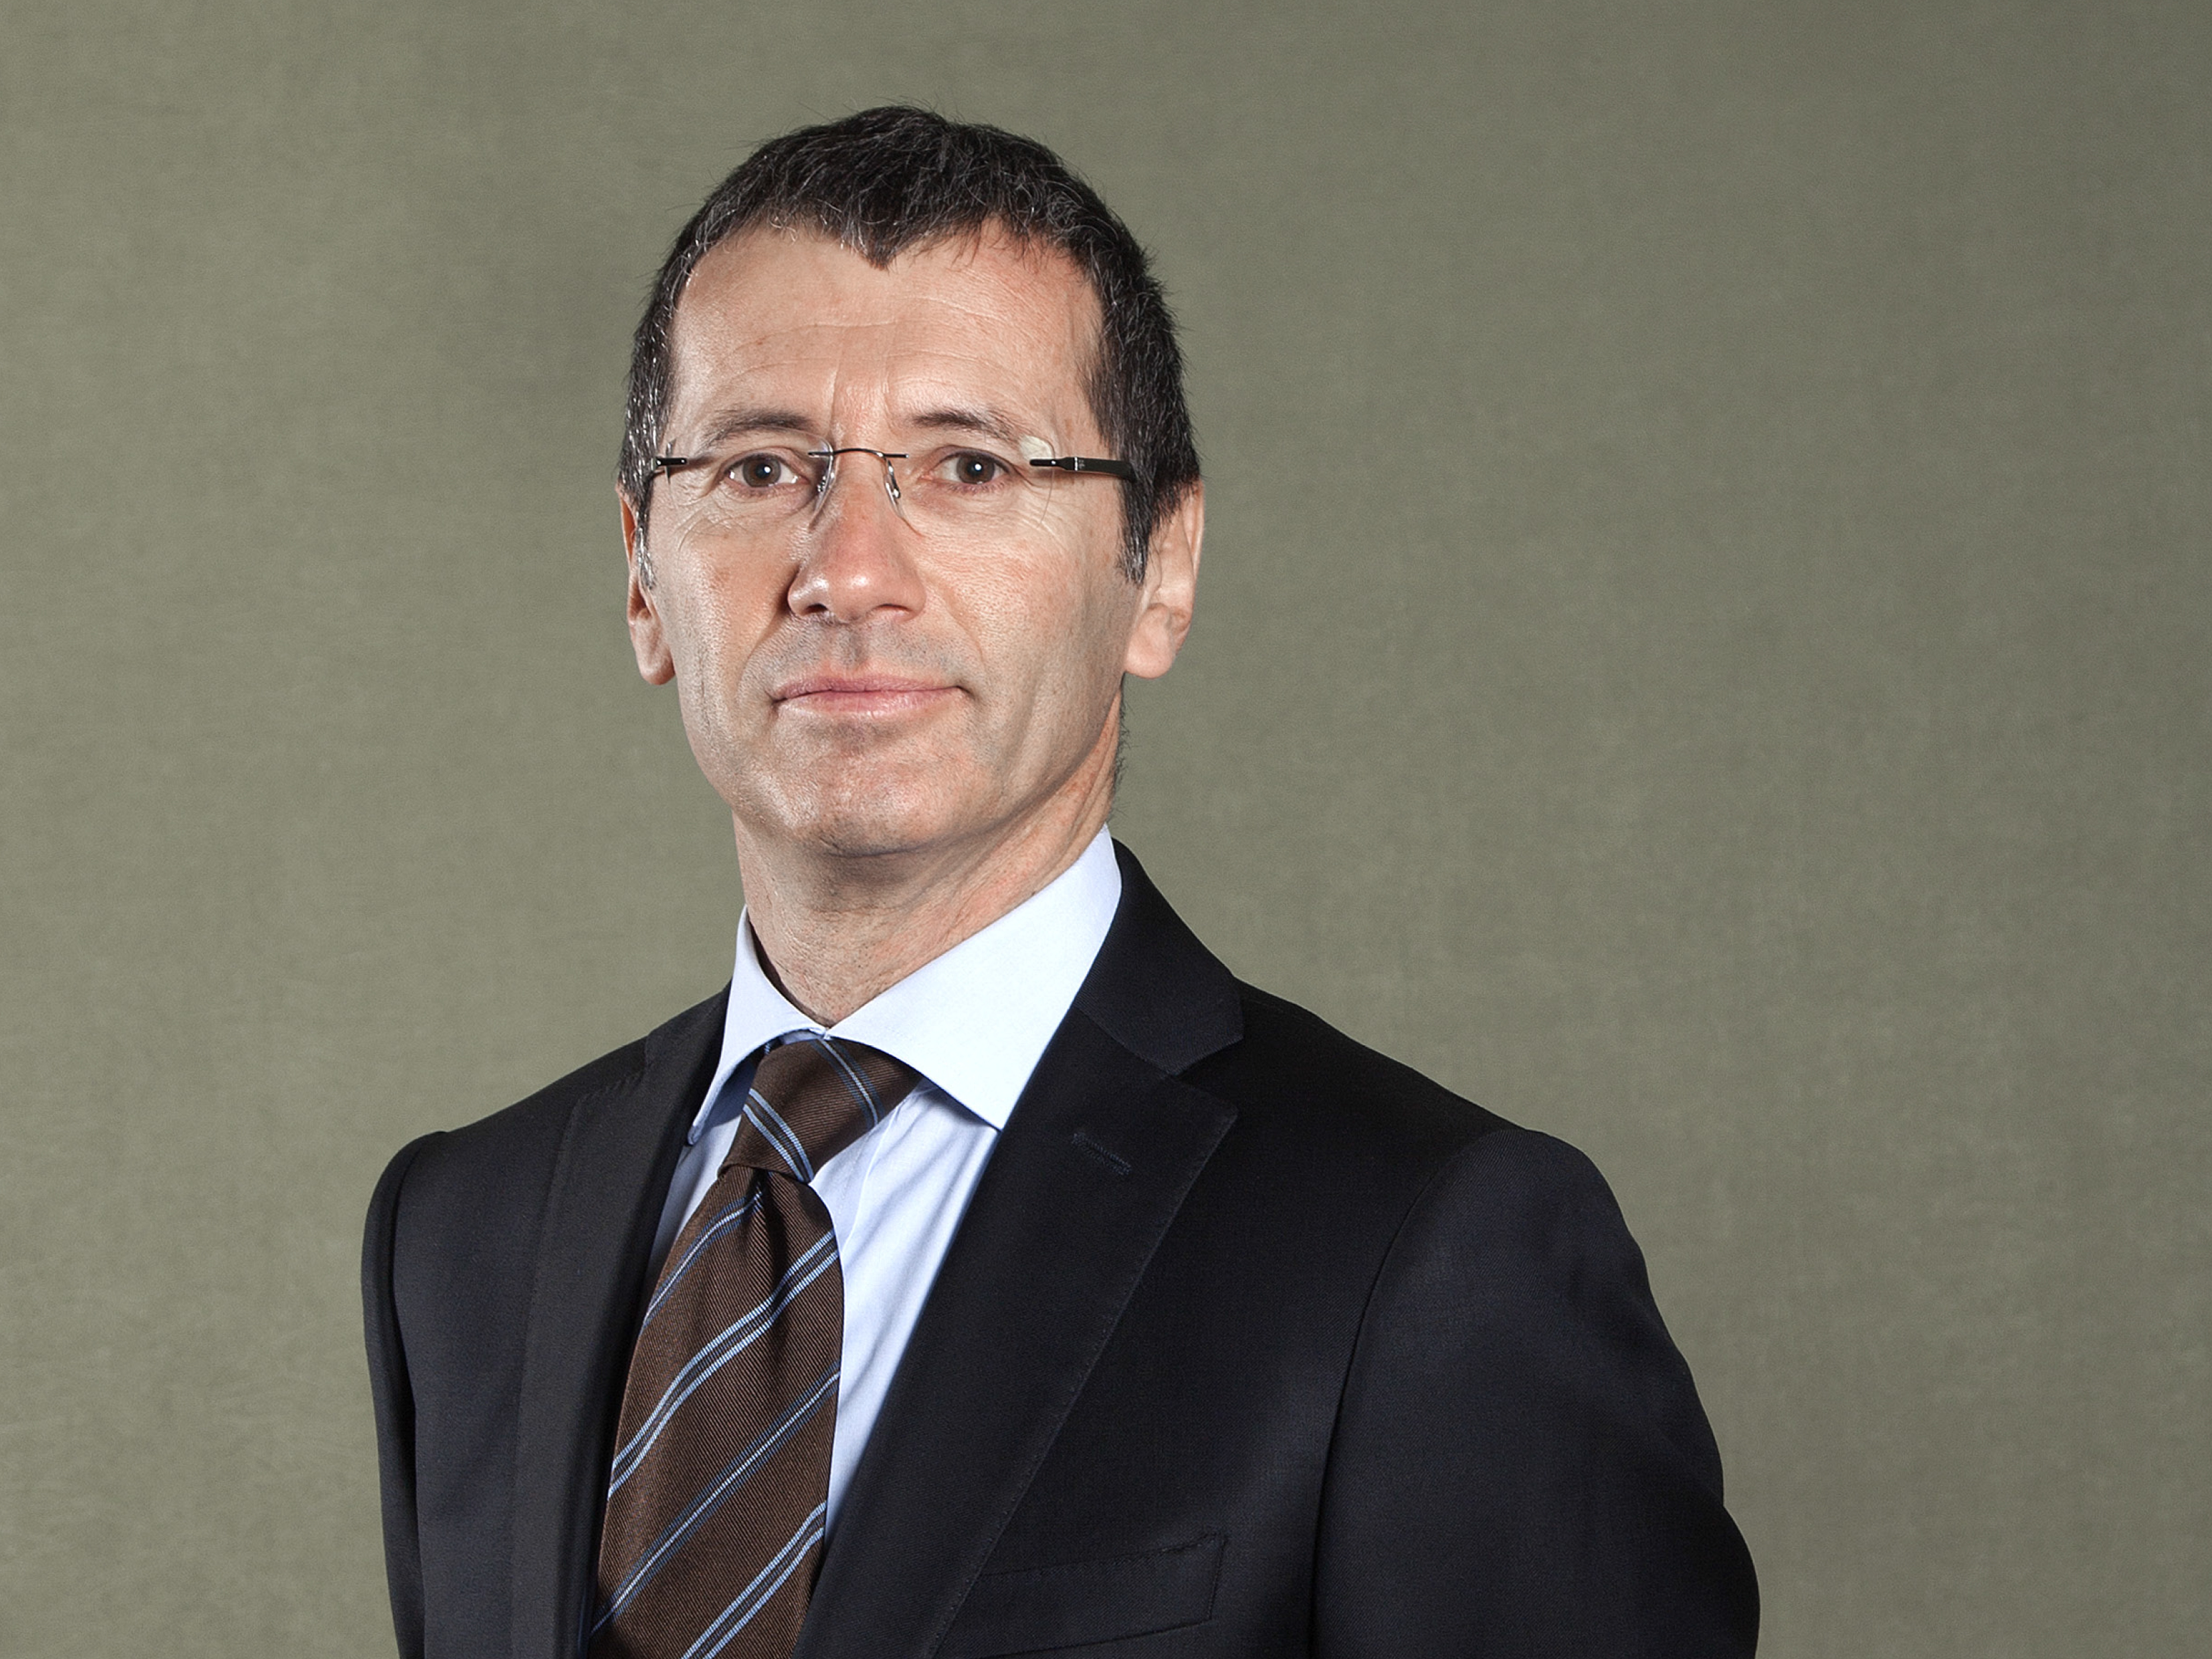 Nicola Monti, Vice President, Power Generation & Engineering division